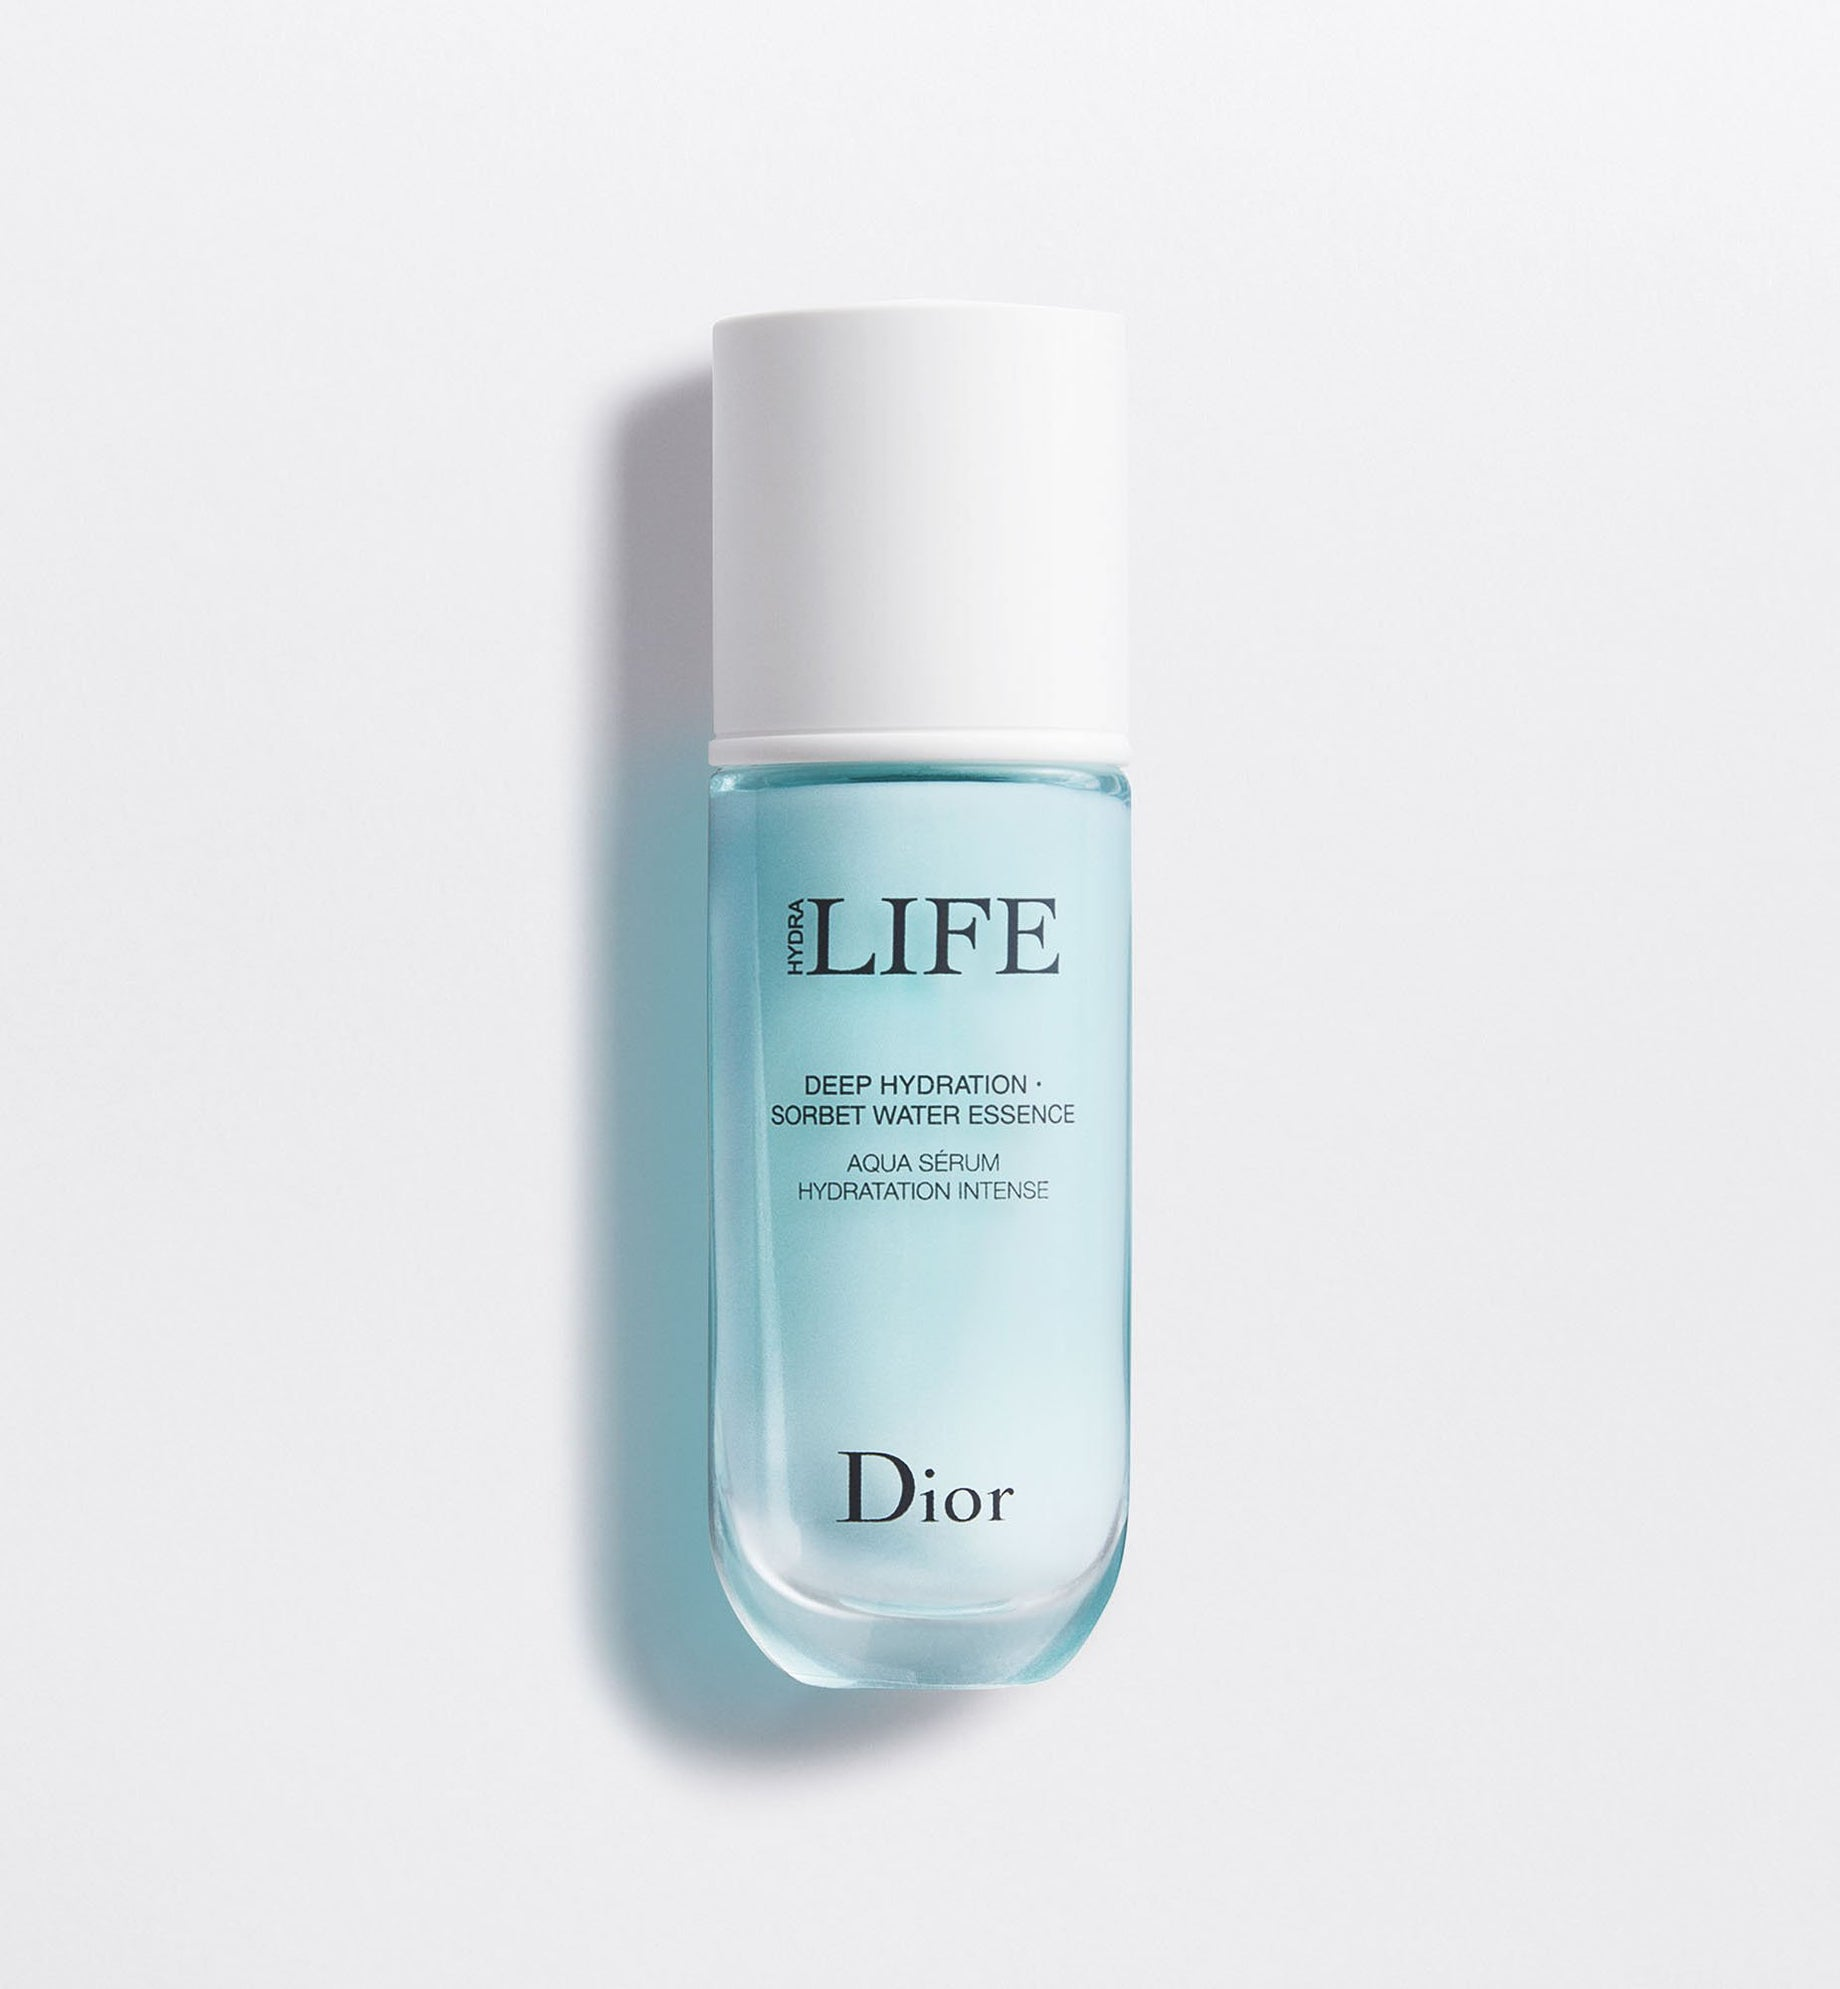 DIOR HYDRA LIFE DEEP HYDRATION - SORBET WATER ESSENCE